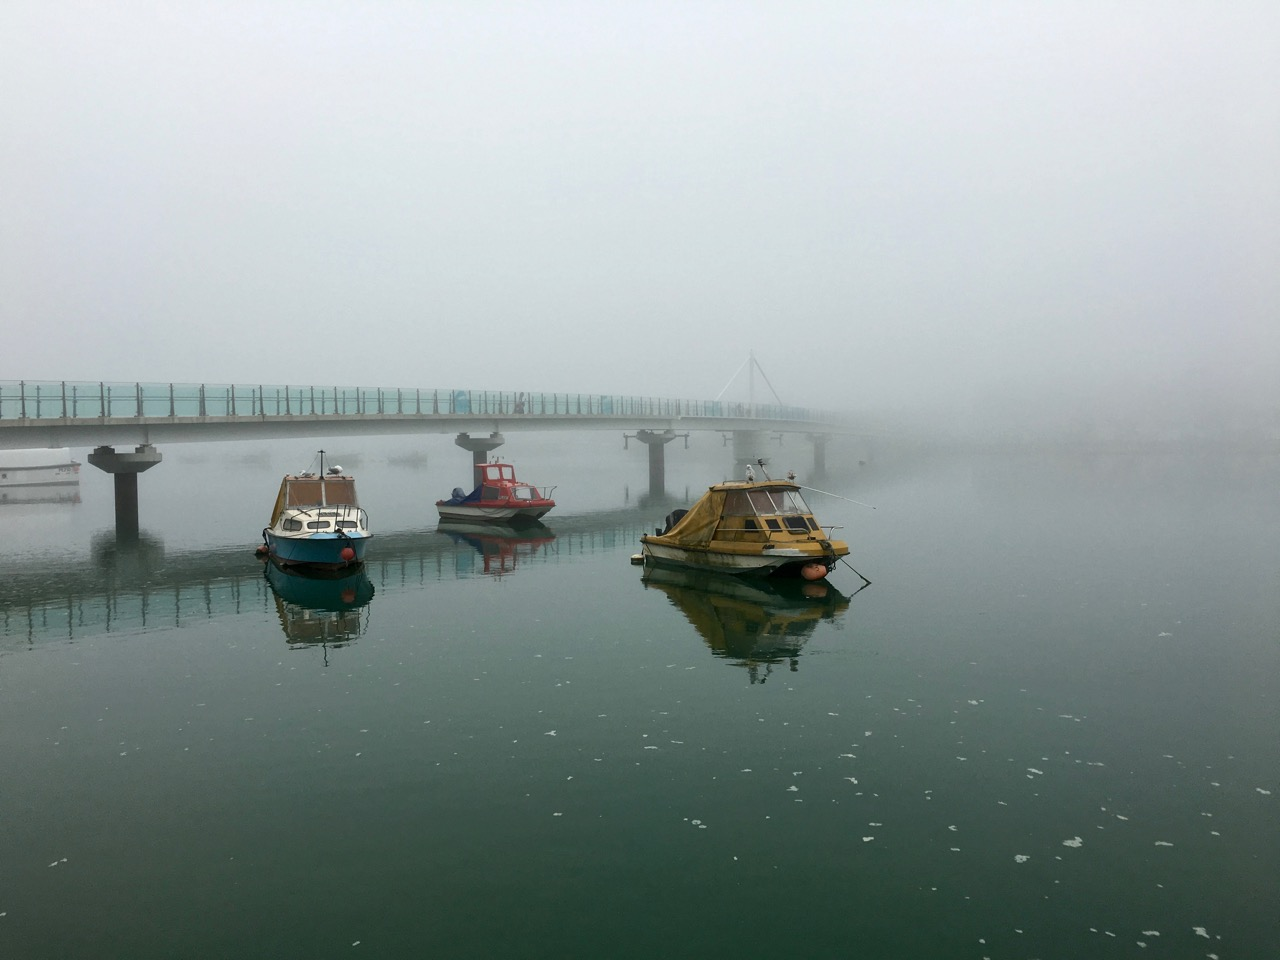 Misty Adur Ferry Bridge